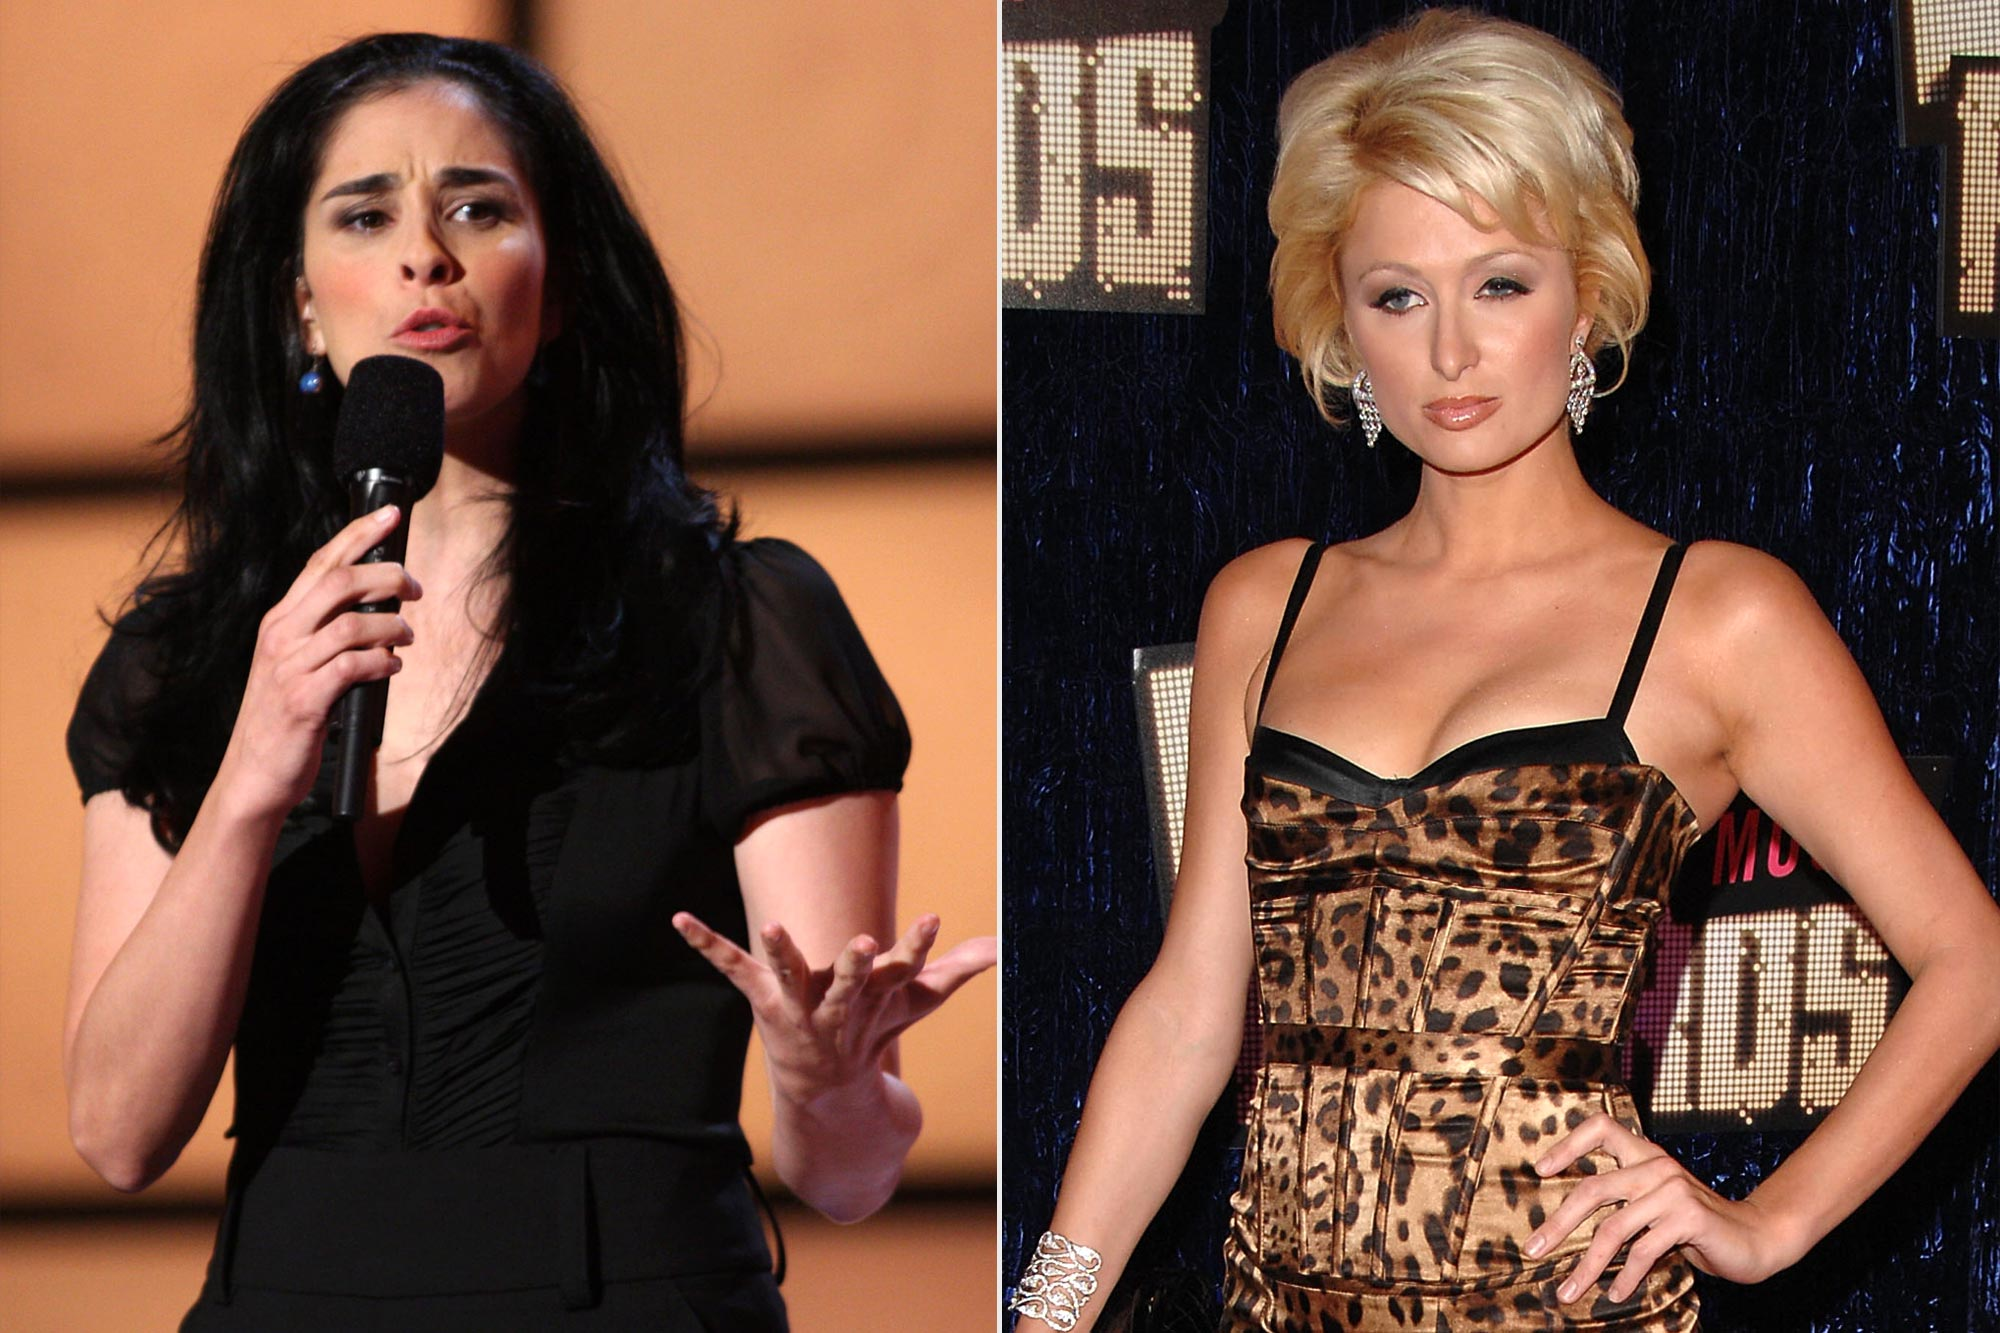 Sarah Silverman and Paris Hilton at the 2007 Video Music Awards